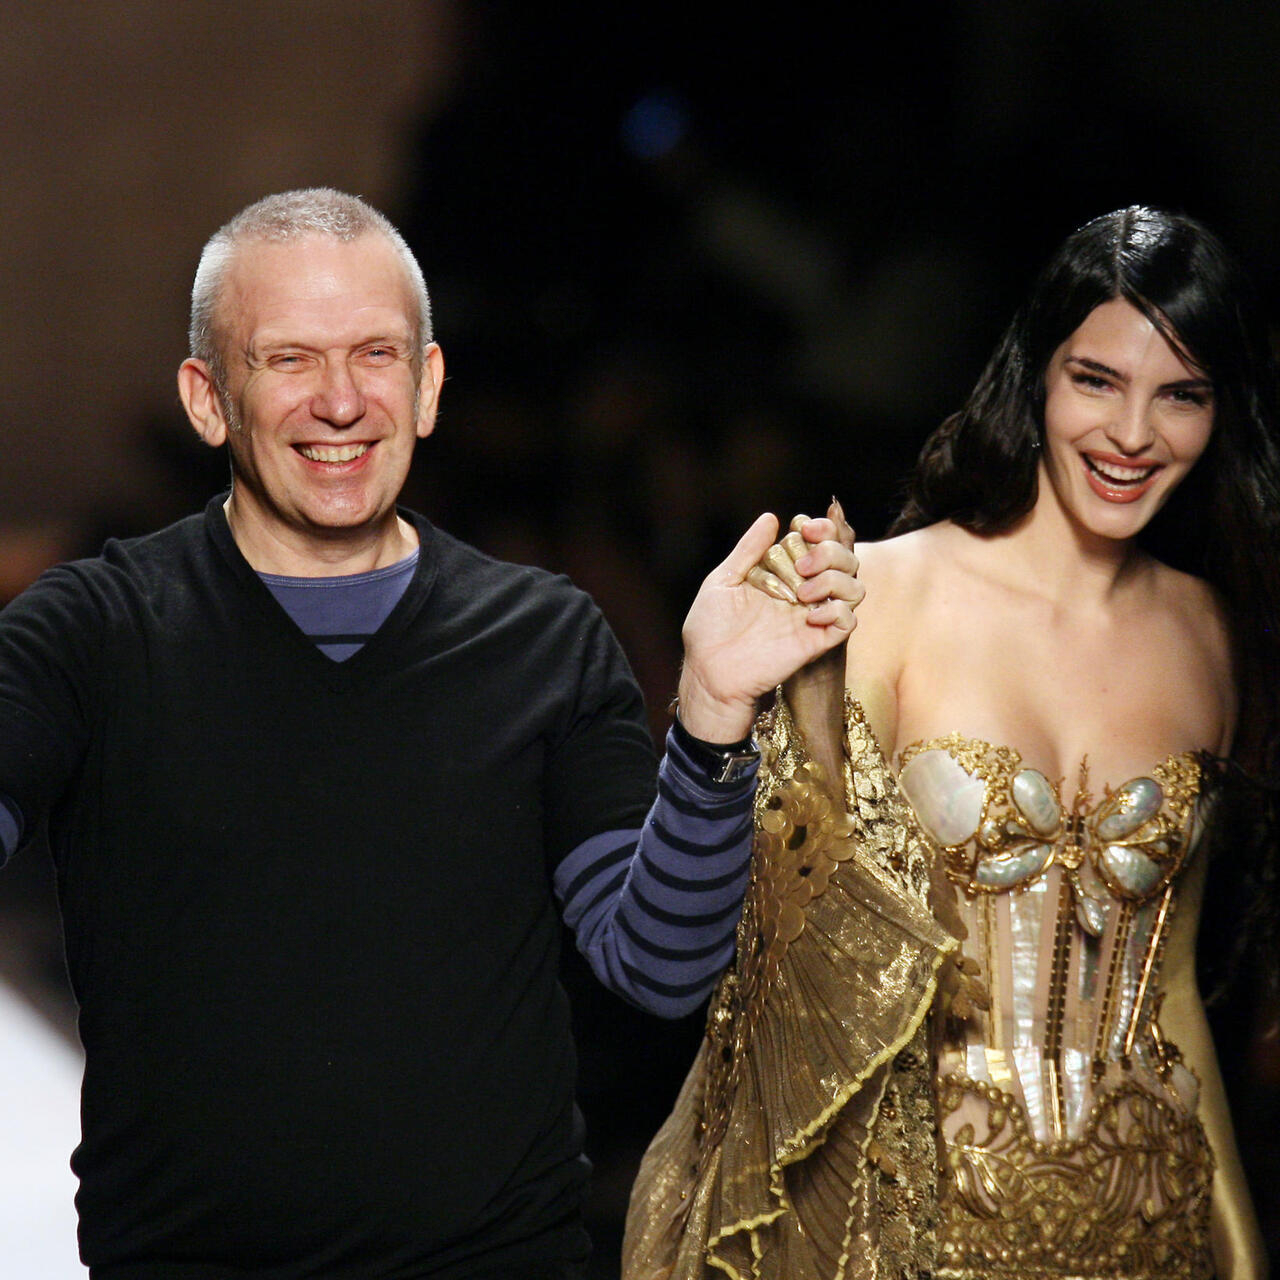 French Fashion Designer Jean Paul Gaultier Announces Retirement